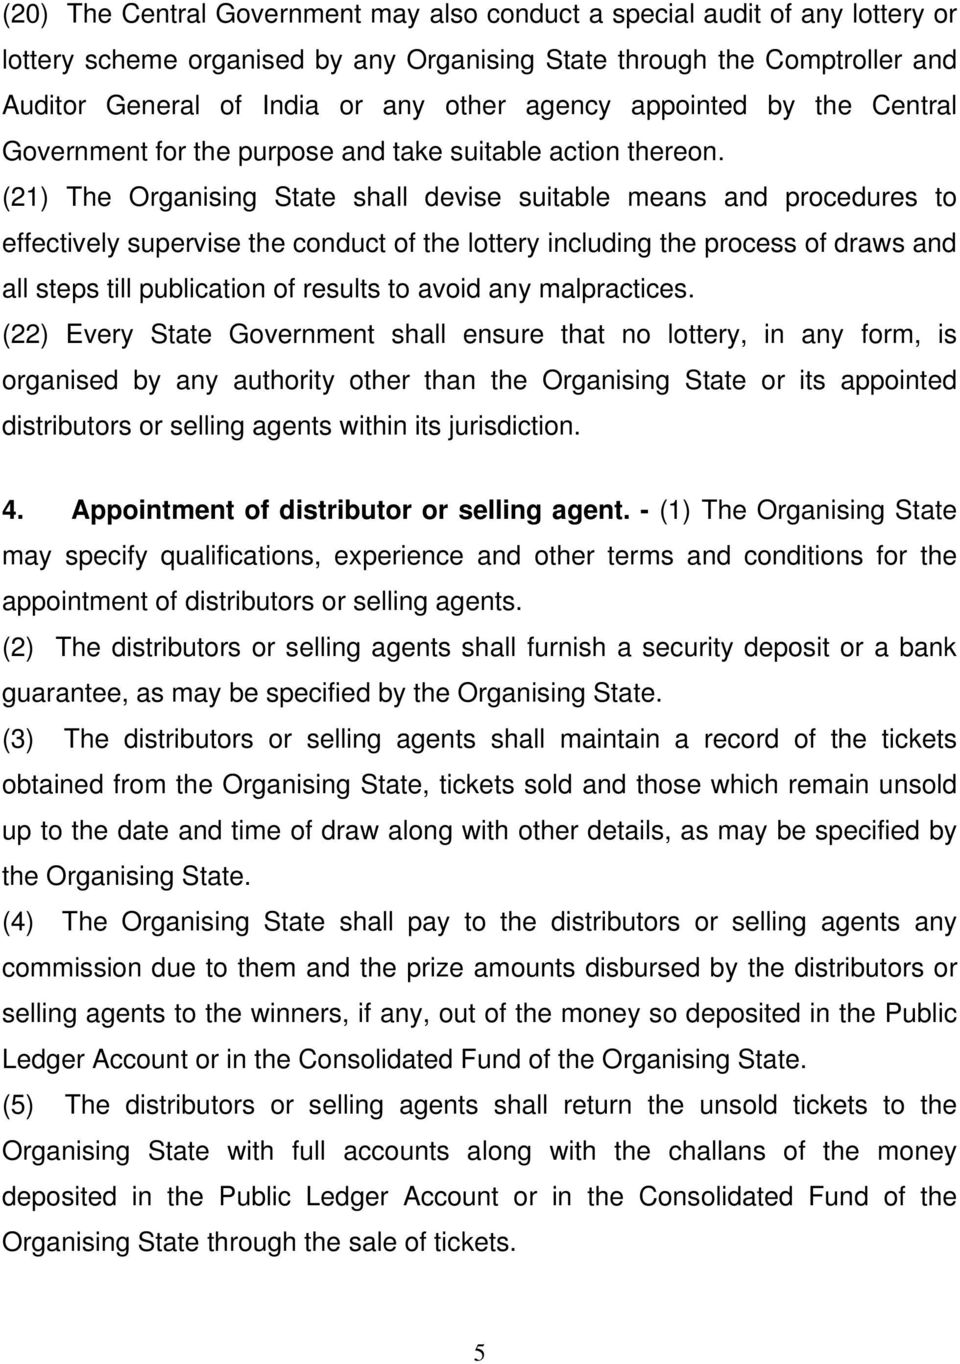 (21) The Organising State shall devise suitable means and procedures to effectively supervise the conduct of the lottery including the process of draws and all steps till publication of results to